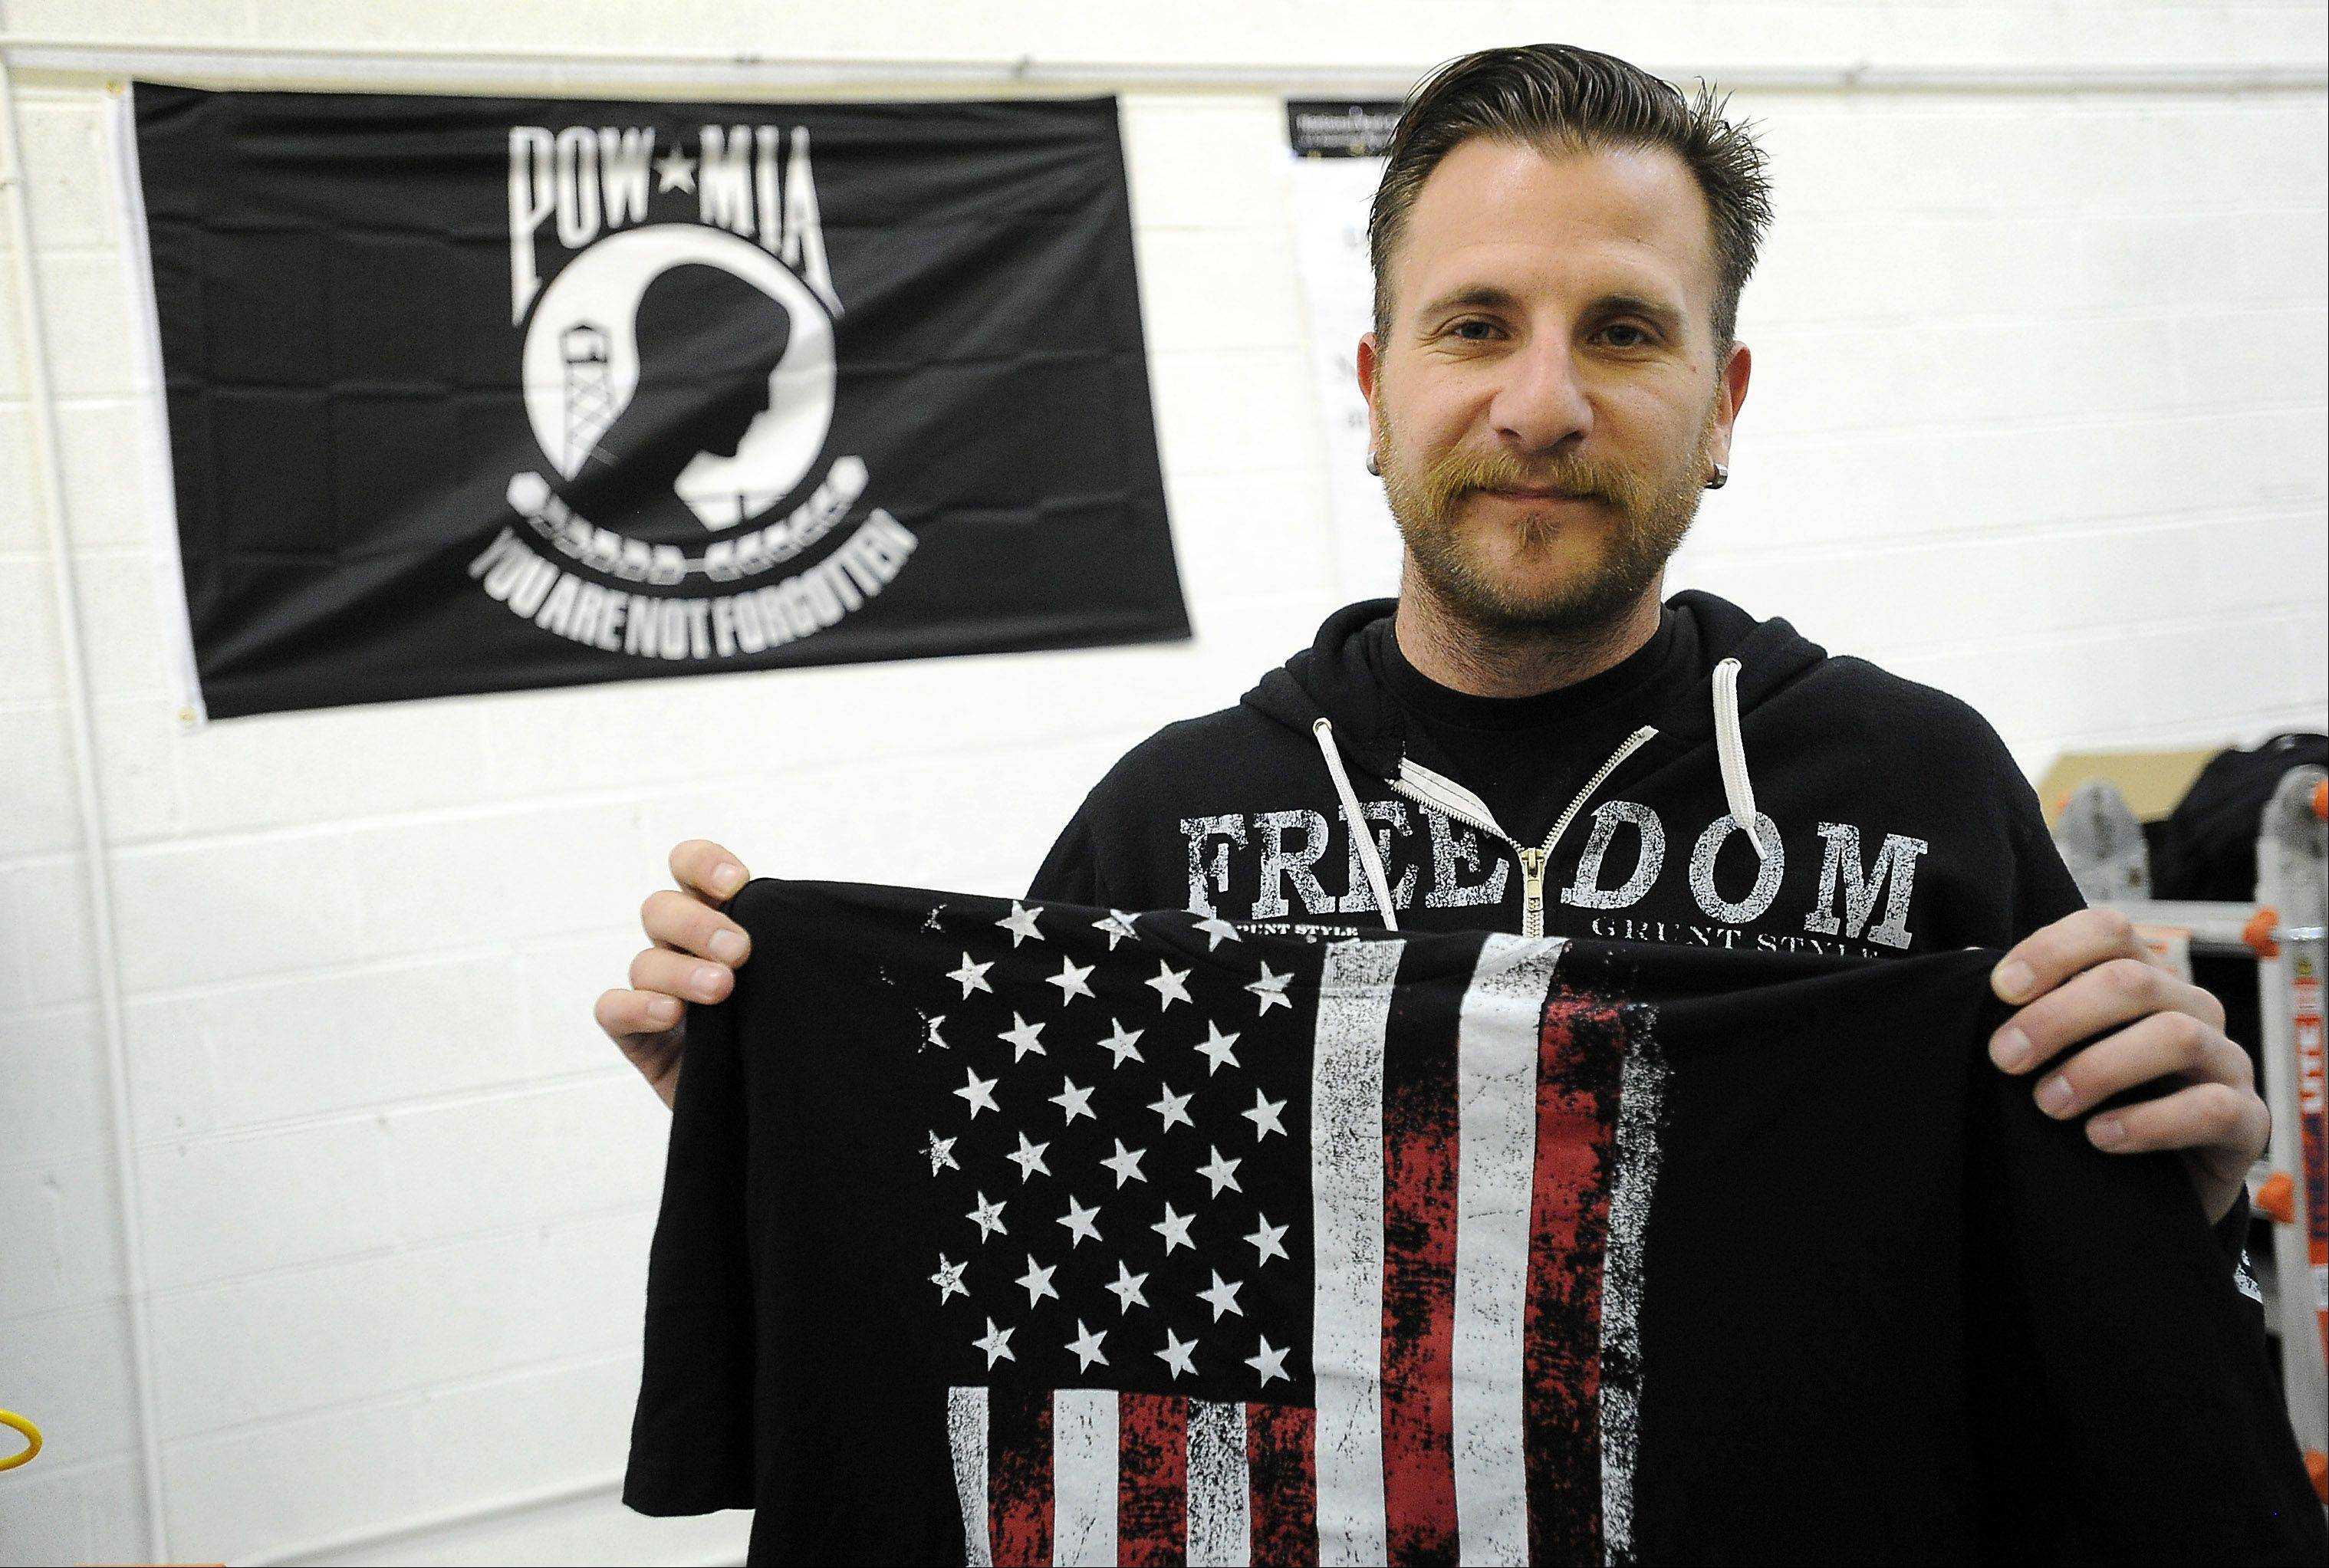 Marine Corps veteran Timothy Jensen of Romeoville holds up a shirt he designed that is one of Grunt Style's more popular items.